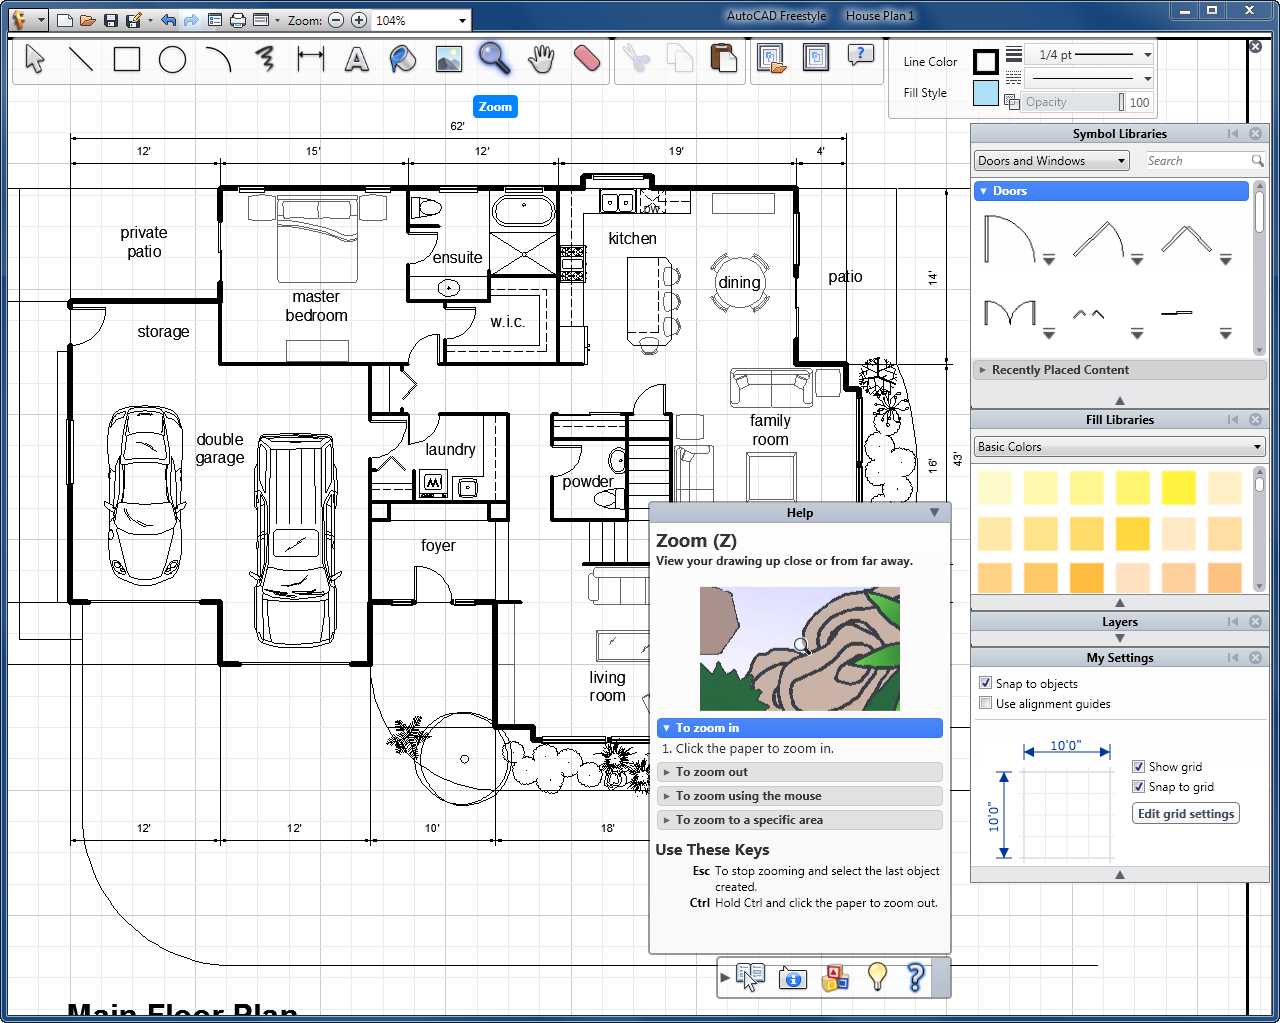 ... drawings, layouts, and plans that you can share. Click to enlarge